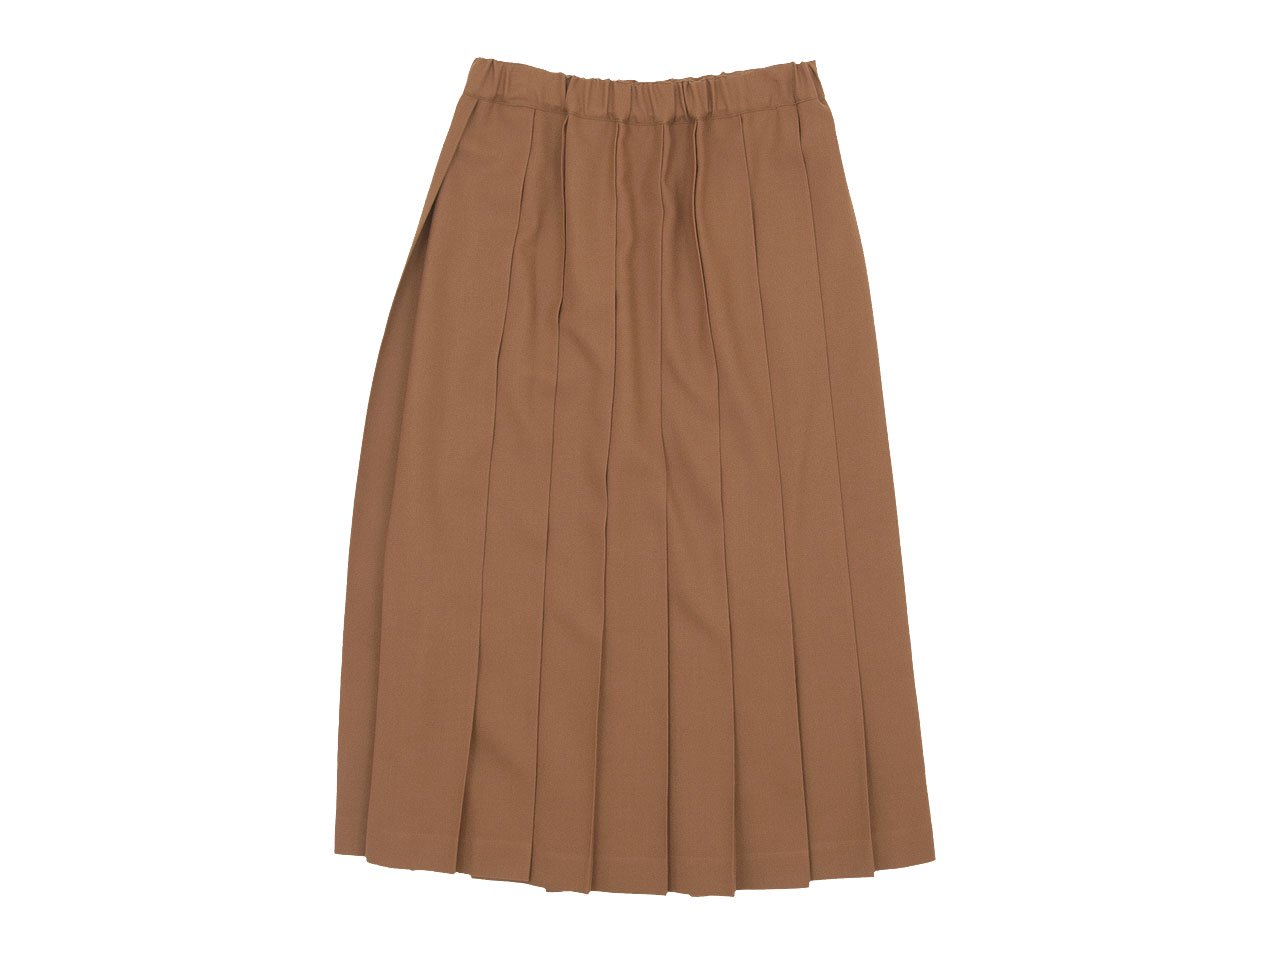 Charpentier de Vaisseau Pleated Skirt Long Wool BEIGE